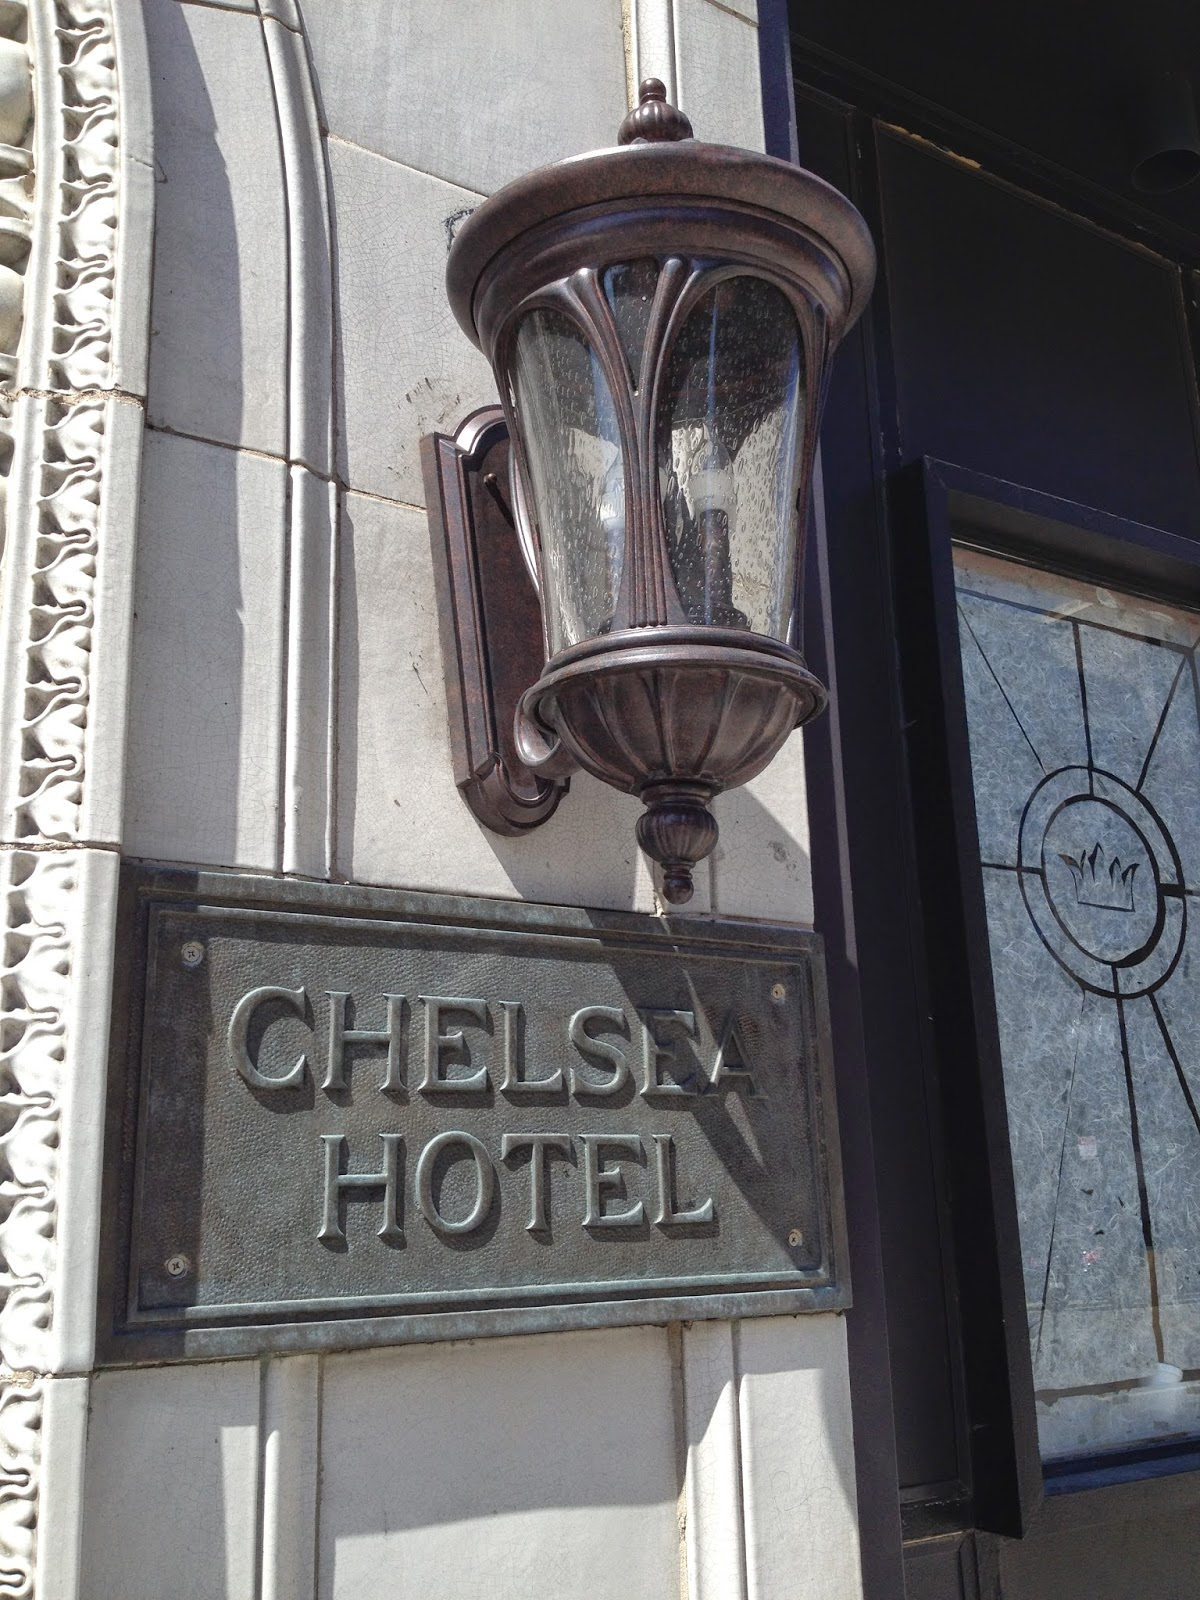 Chelsea Hotel Chicago Uptown neighborhood